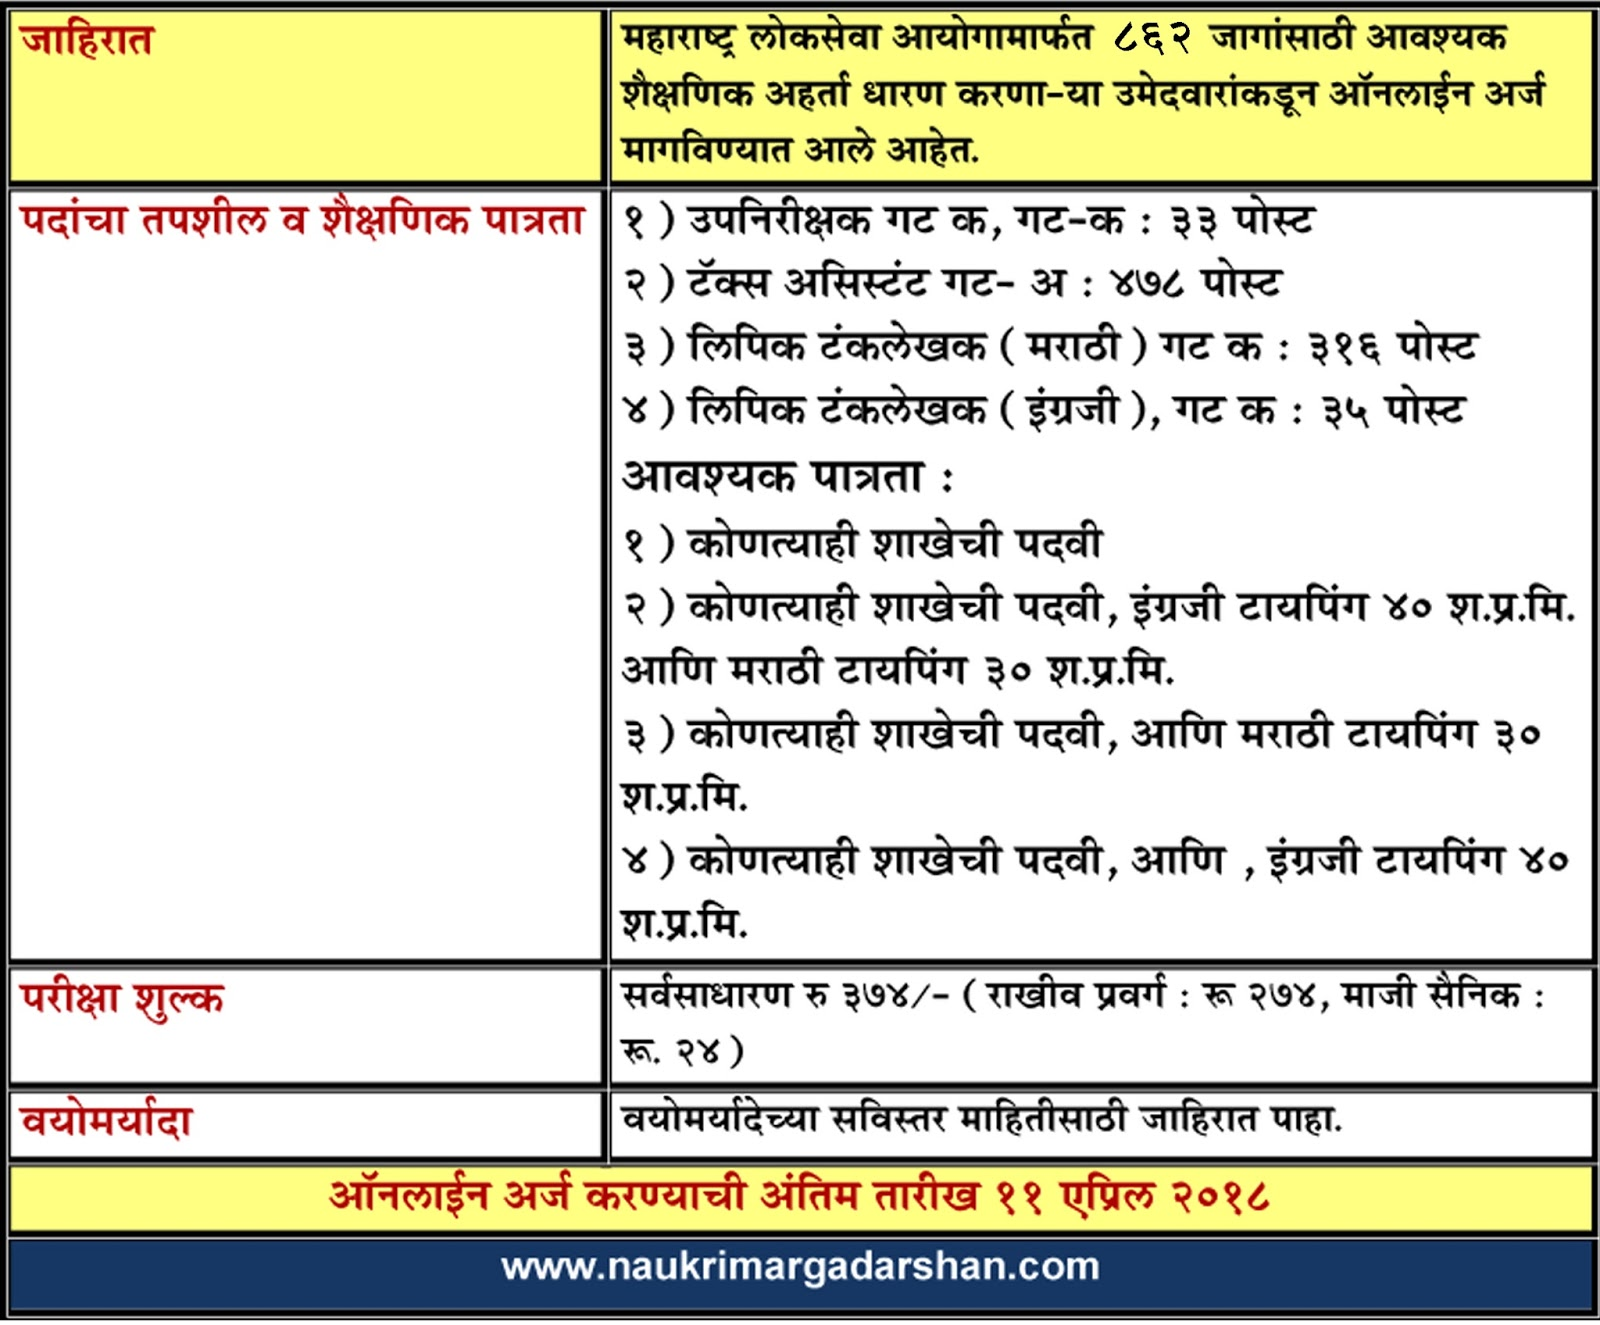 mpsc vacancy, mpsc bharti, mpsc recruitment, naukri margadarshan